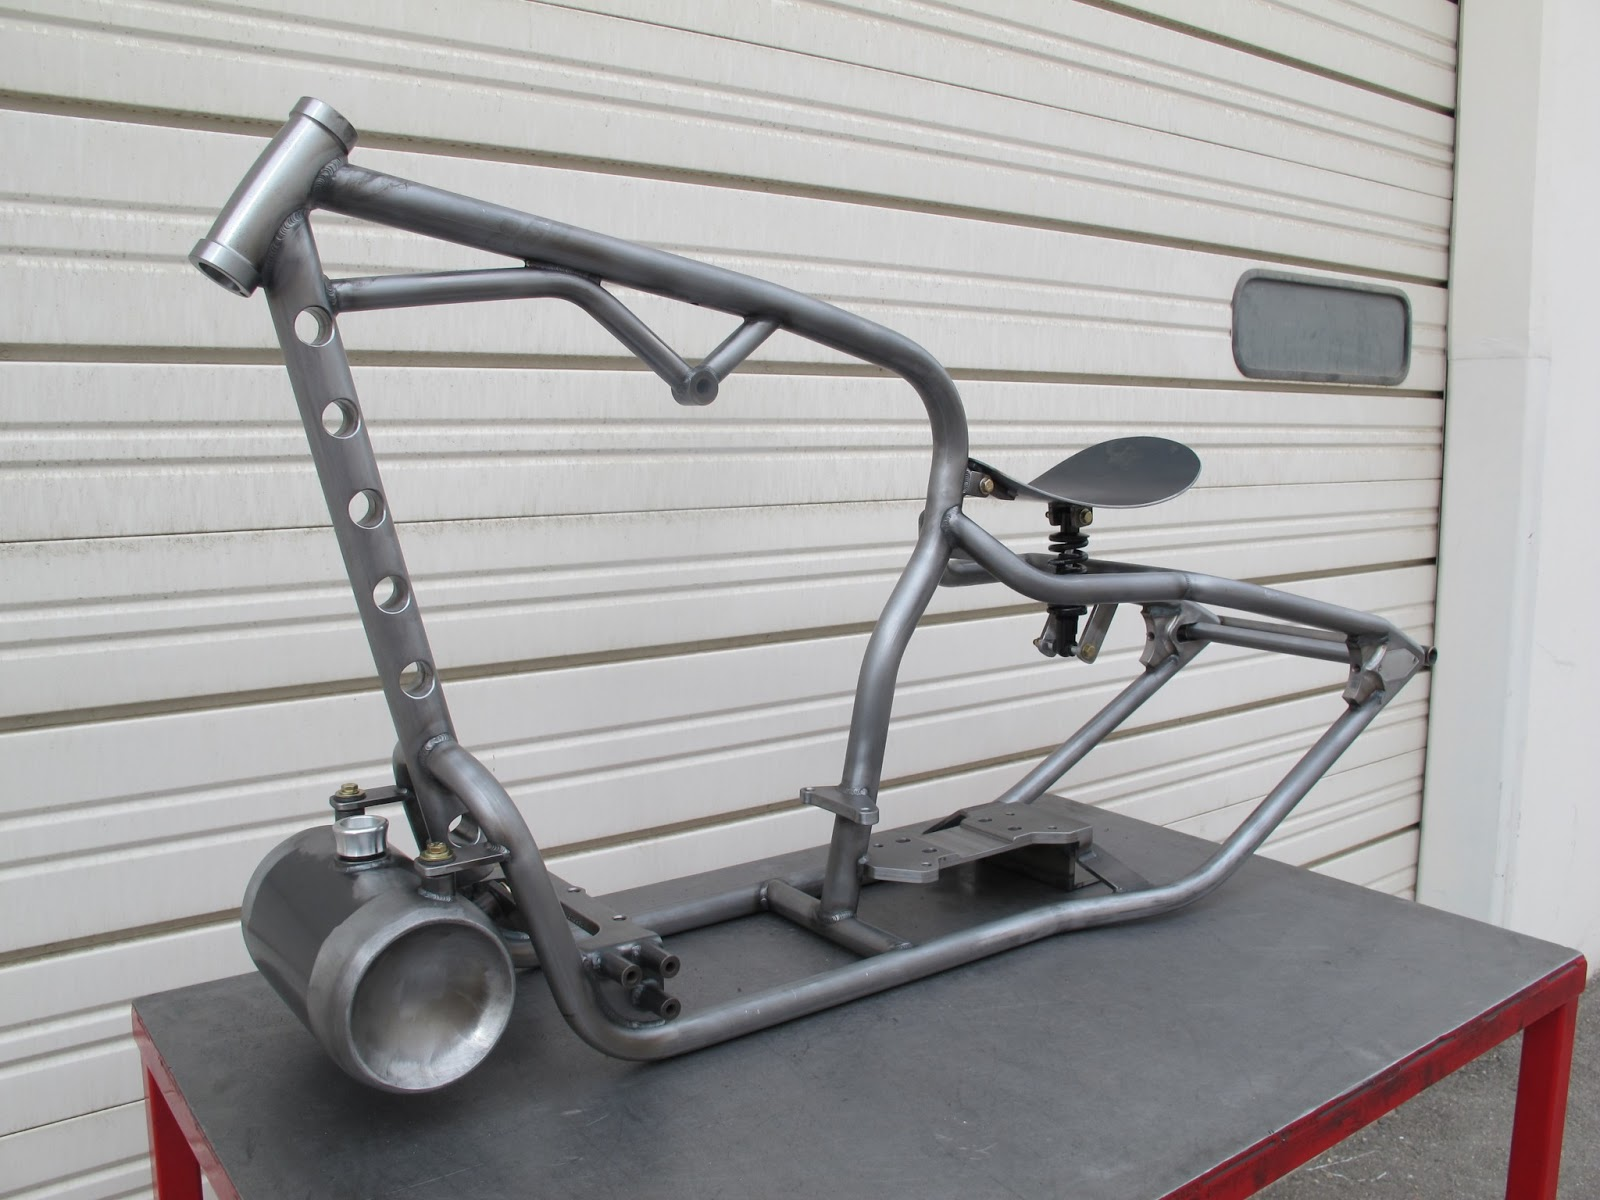 Chassis Design Company: February 2013